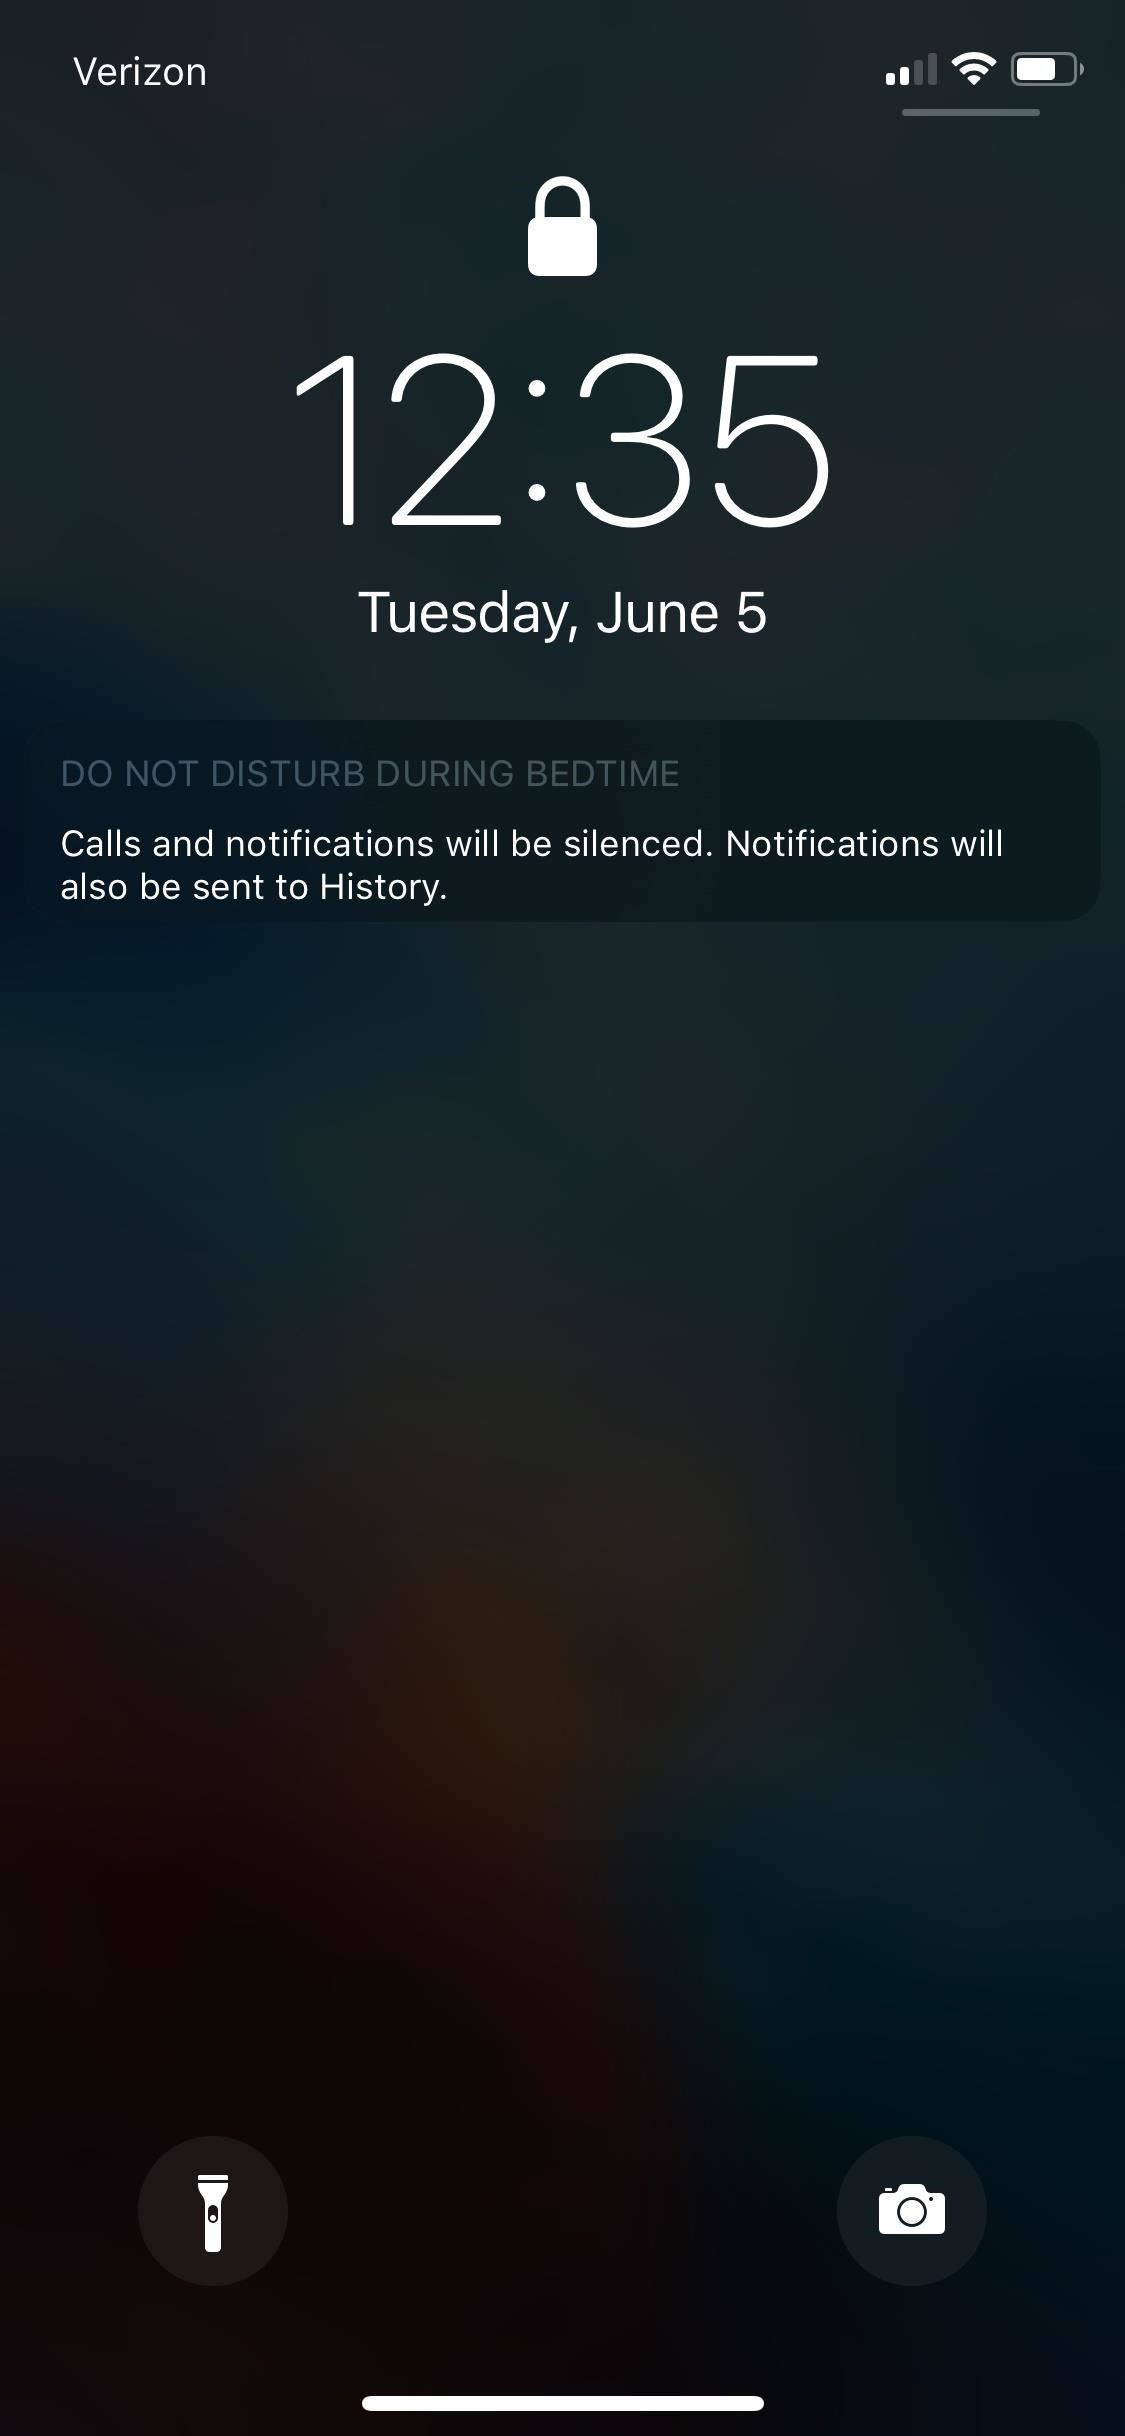 42 cool new features of iOS 12 that you did not know about